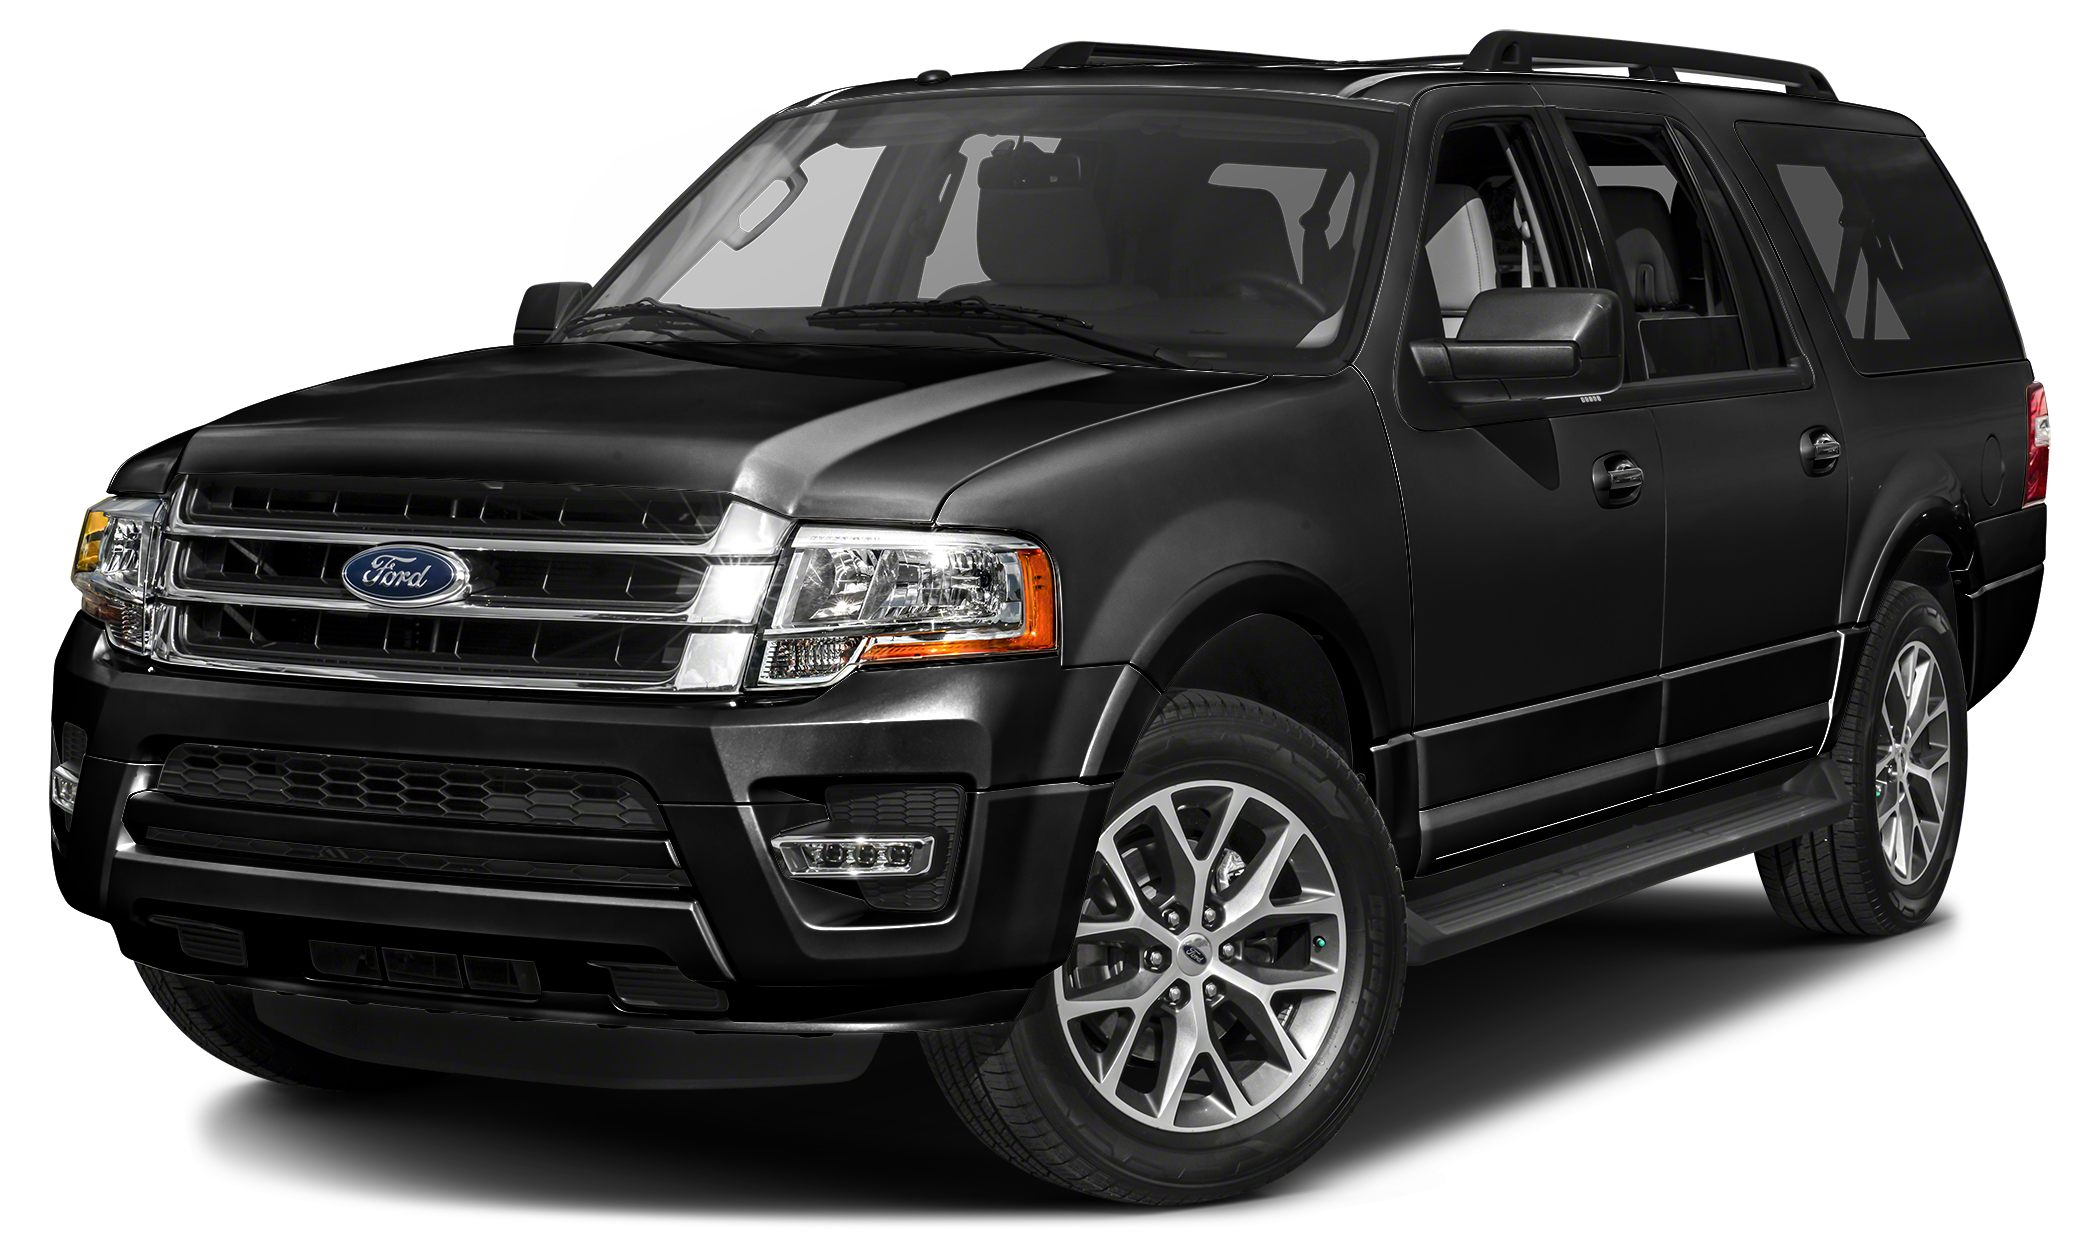 2015 Ford Expedition EL XLT Here at Lake Keowee Ford our customers come first and our prices will